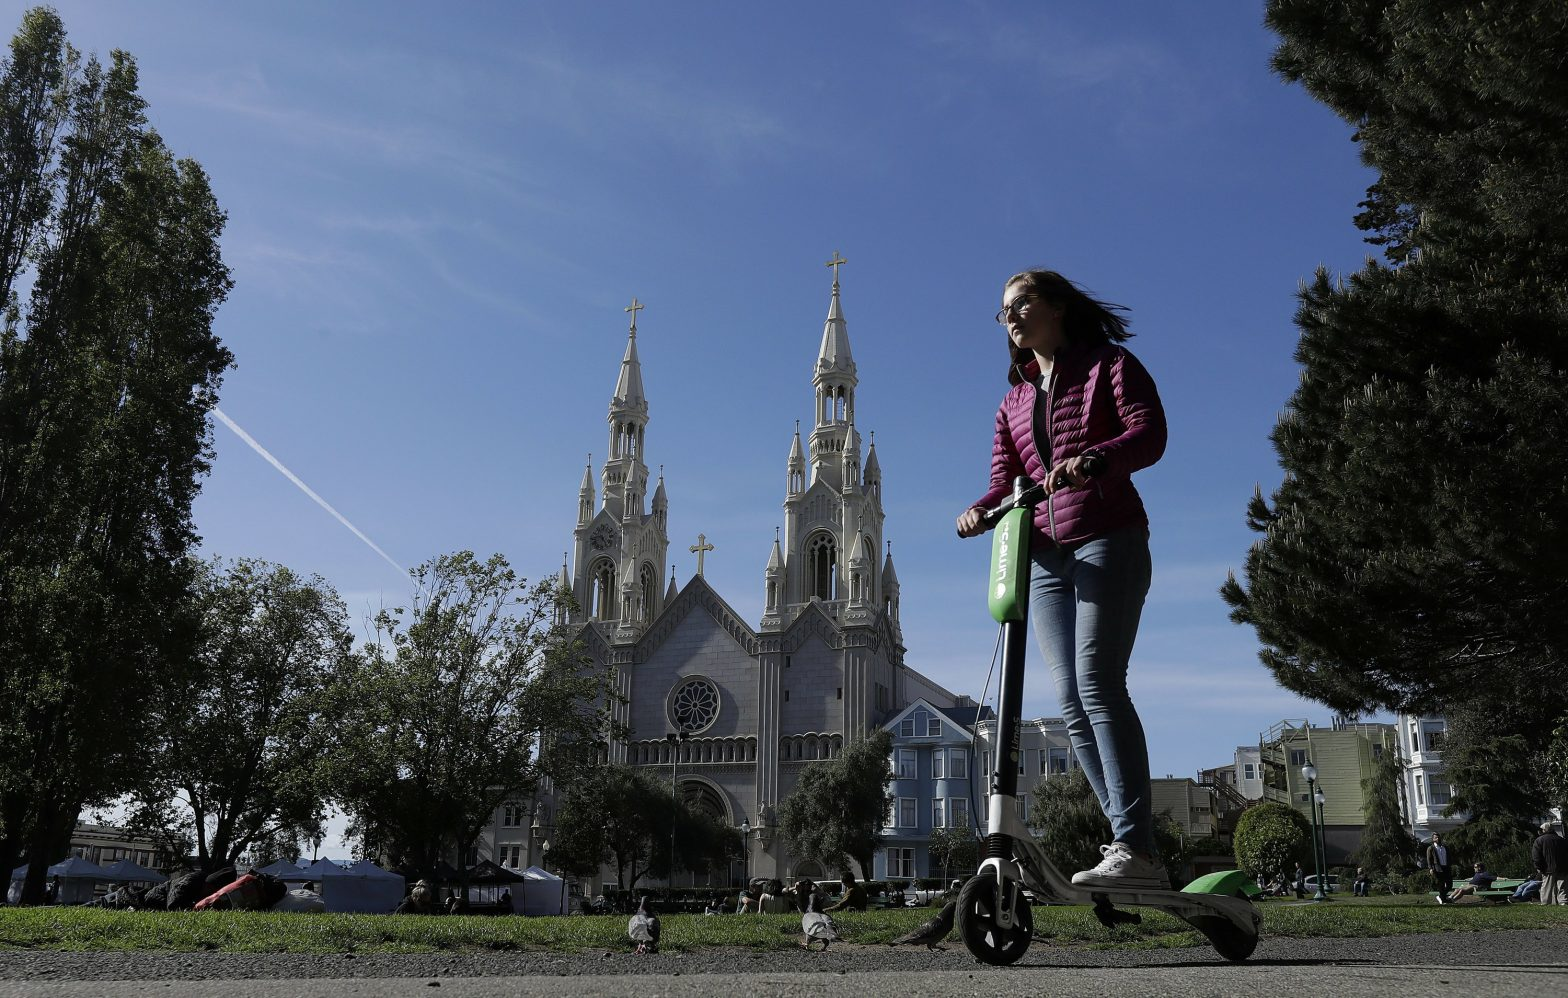 Testing tech ideas in public? San Francisco says get permit – The Associated Press